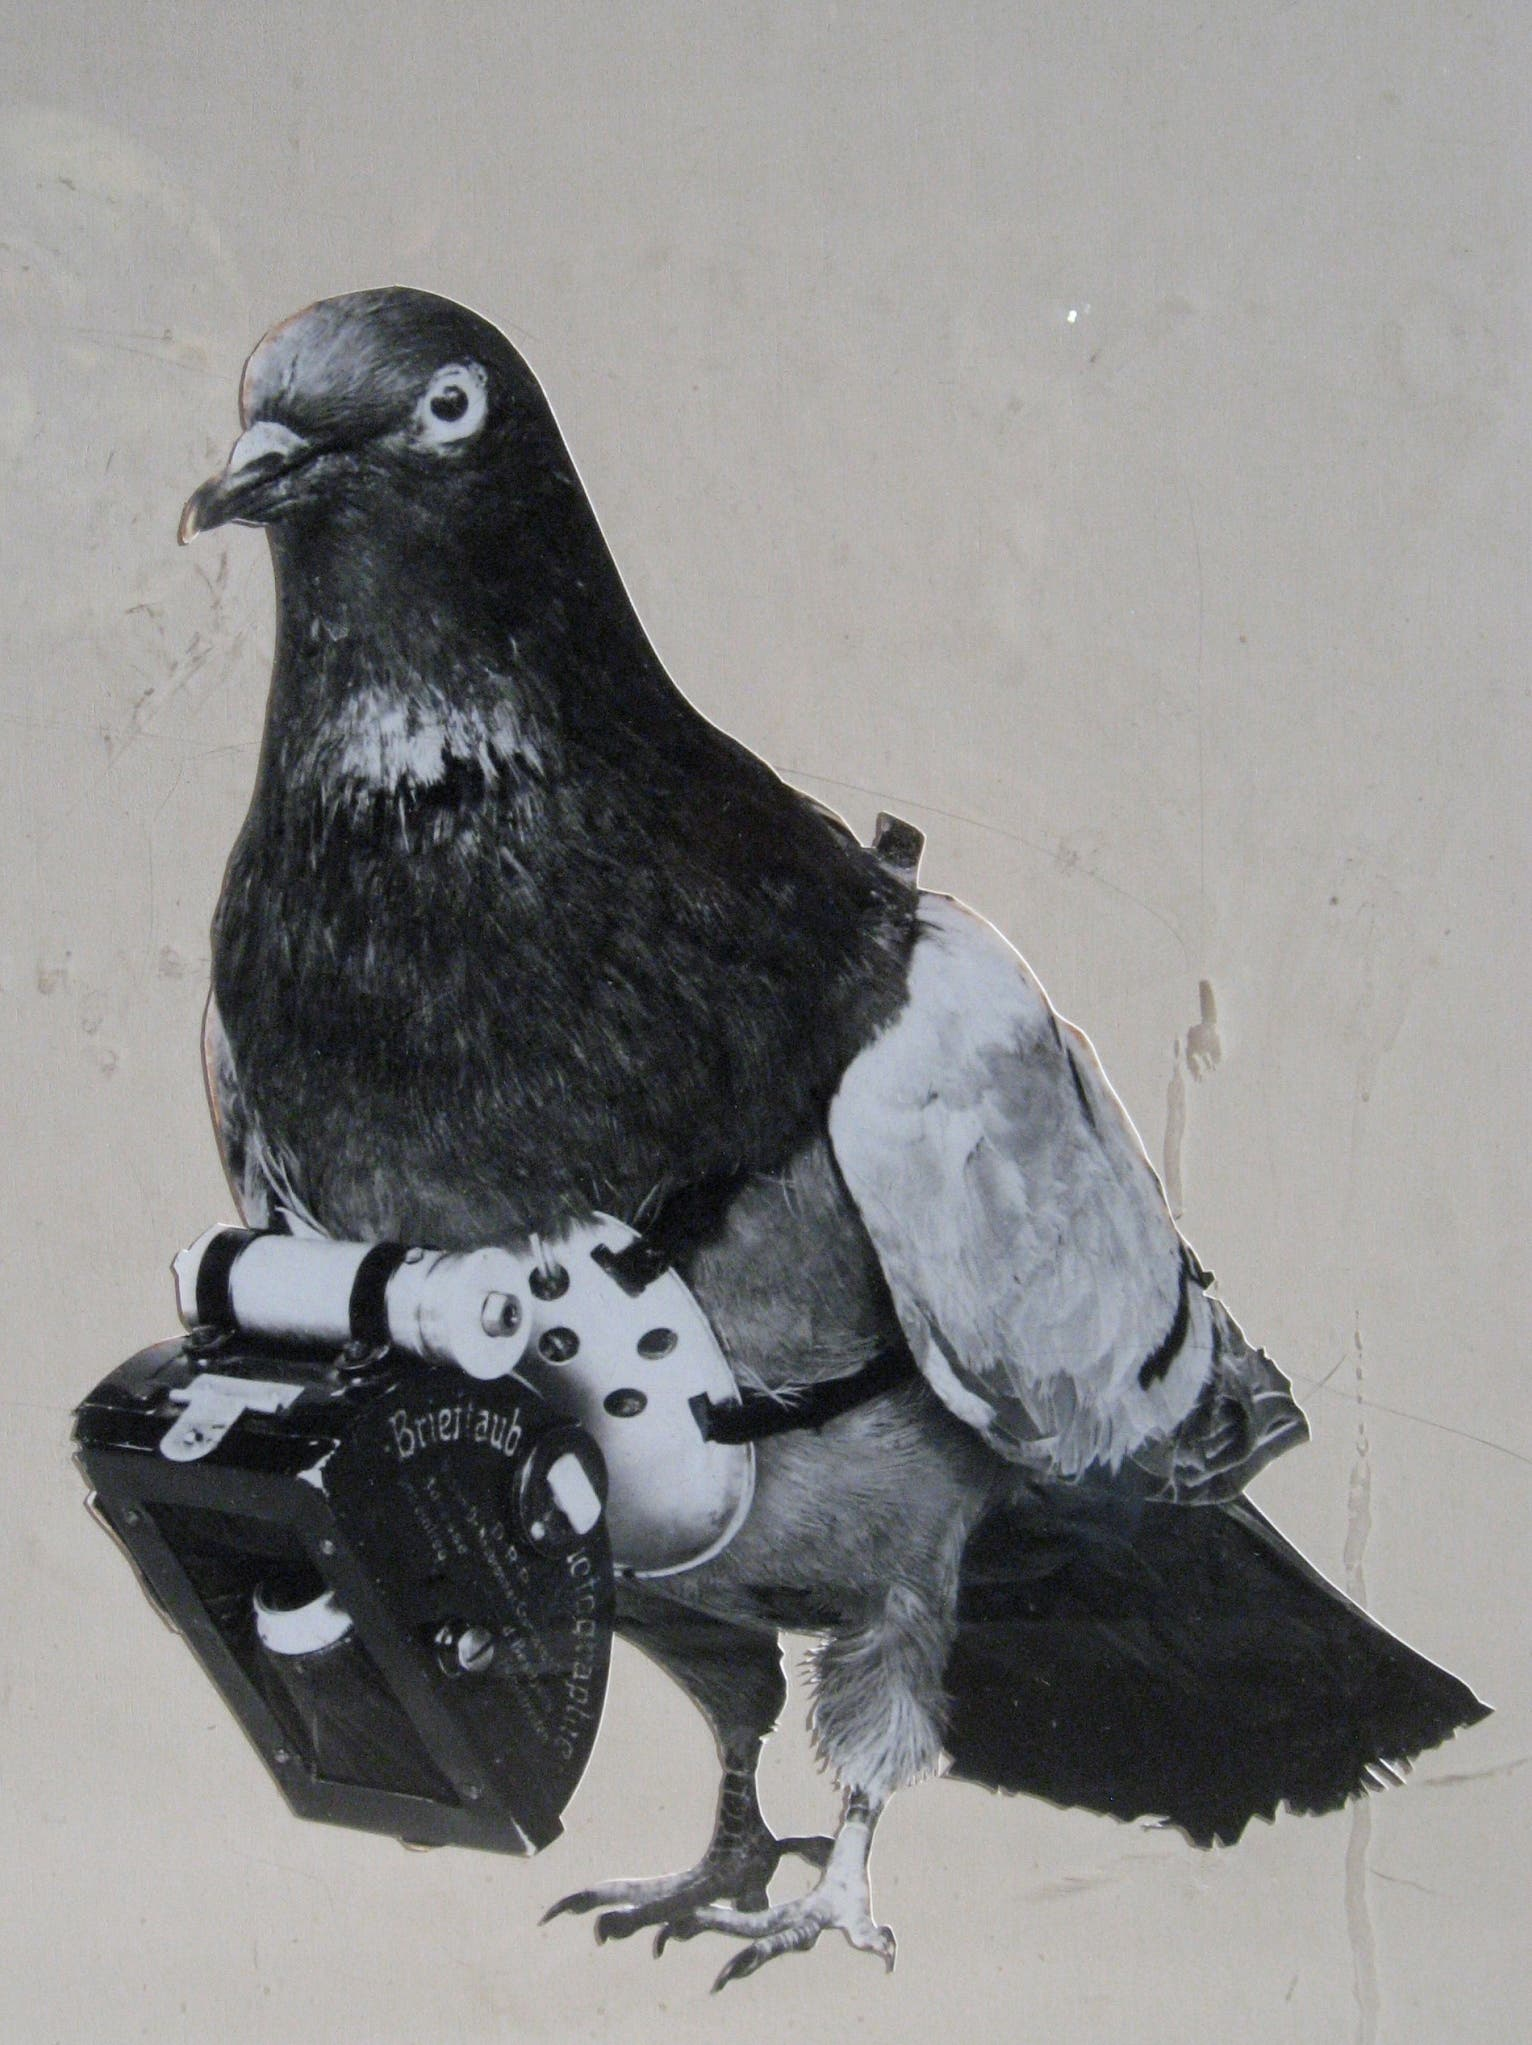 In the 1970s, The C.I.A.'s Bird Camera Program Spied on the Soviets